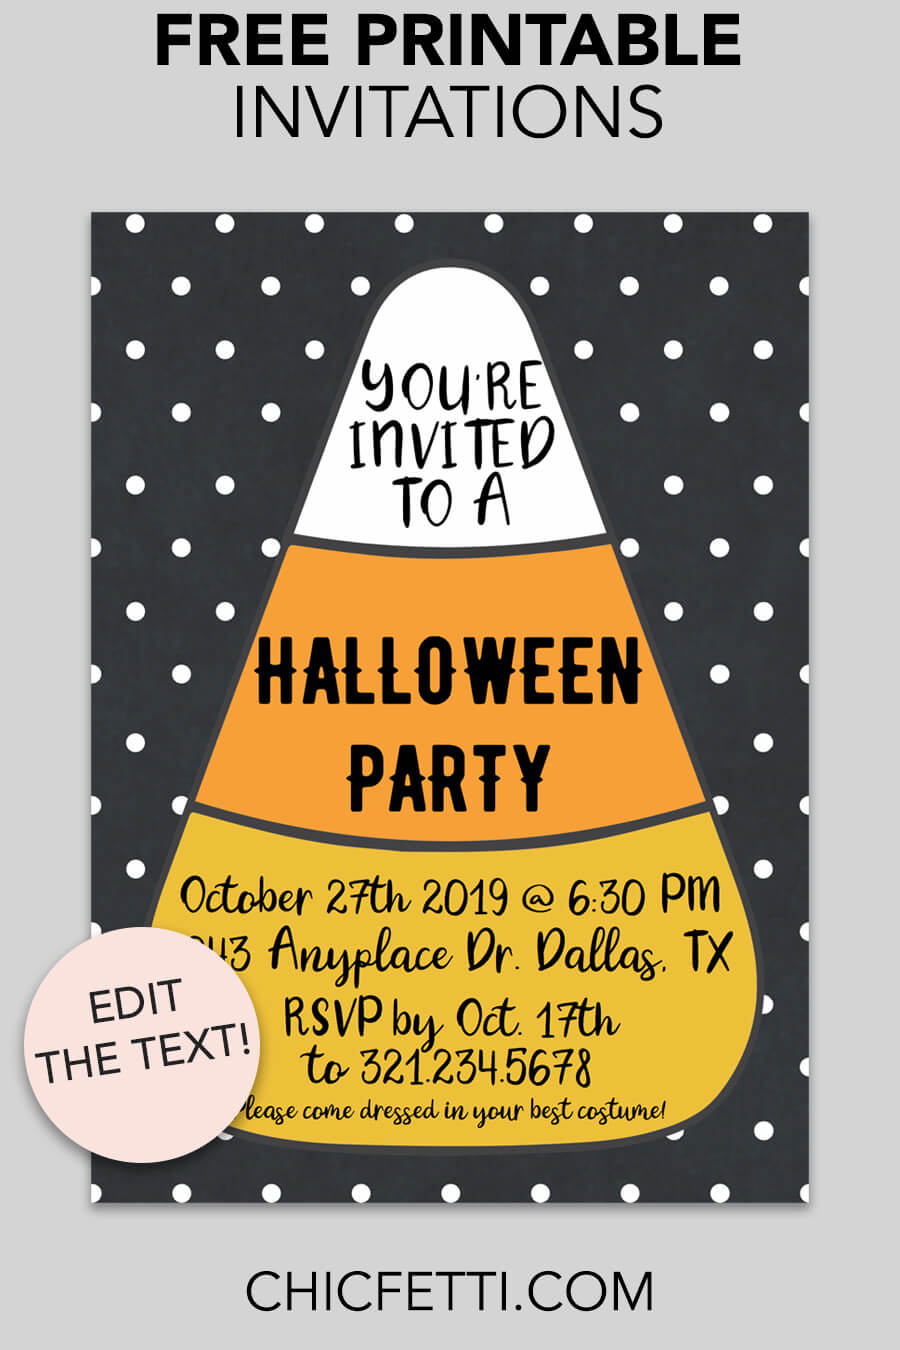 Free Printable Candy Corn Invitation - make your own invitations with this free invitation template. This invitation is a great party idea for any Halloween or Pumpkin Carving party! #partyideas #freeprintable #party #printable #halloween #halloweenideas #invitation #printableinvitation